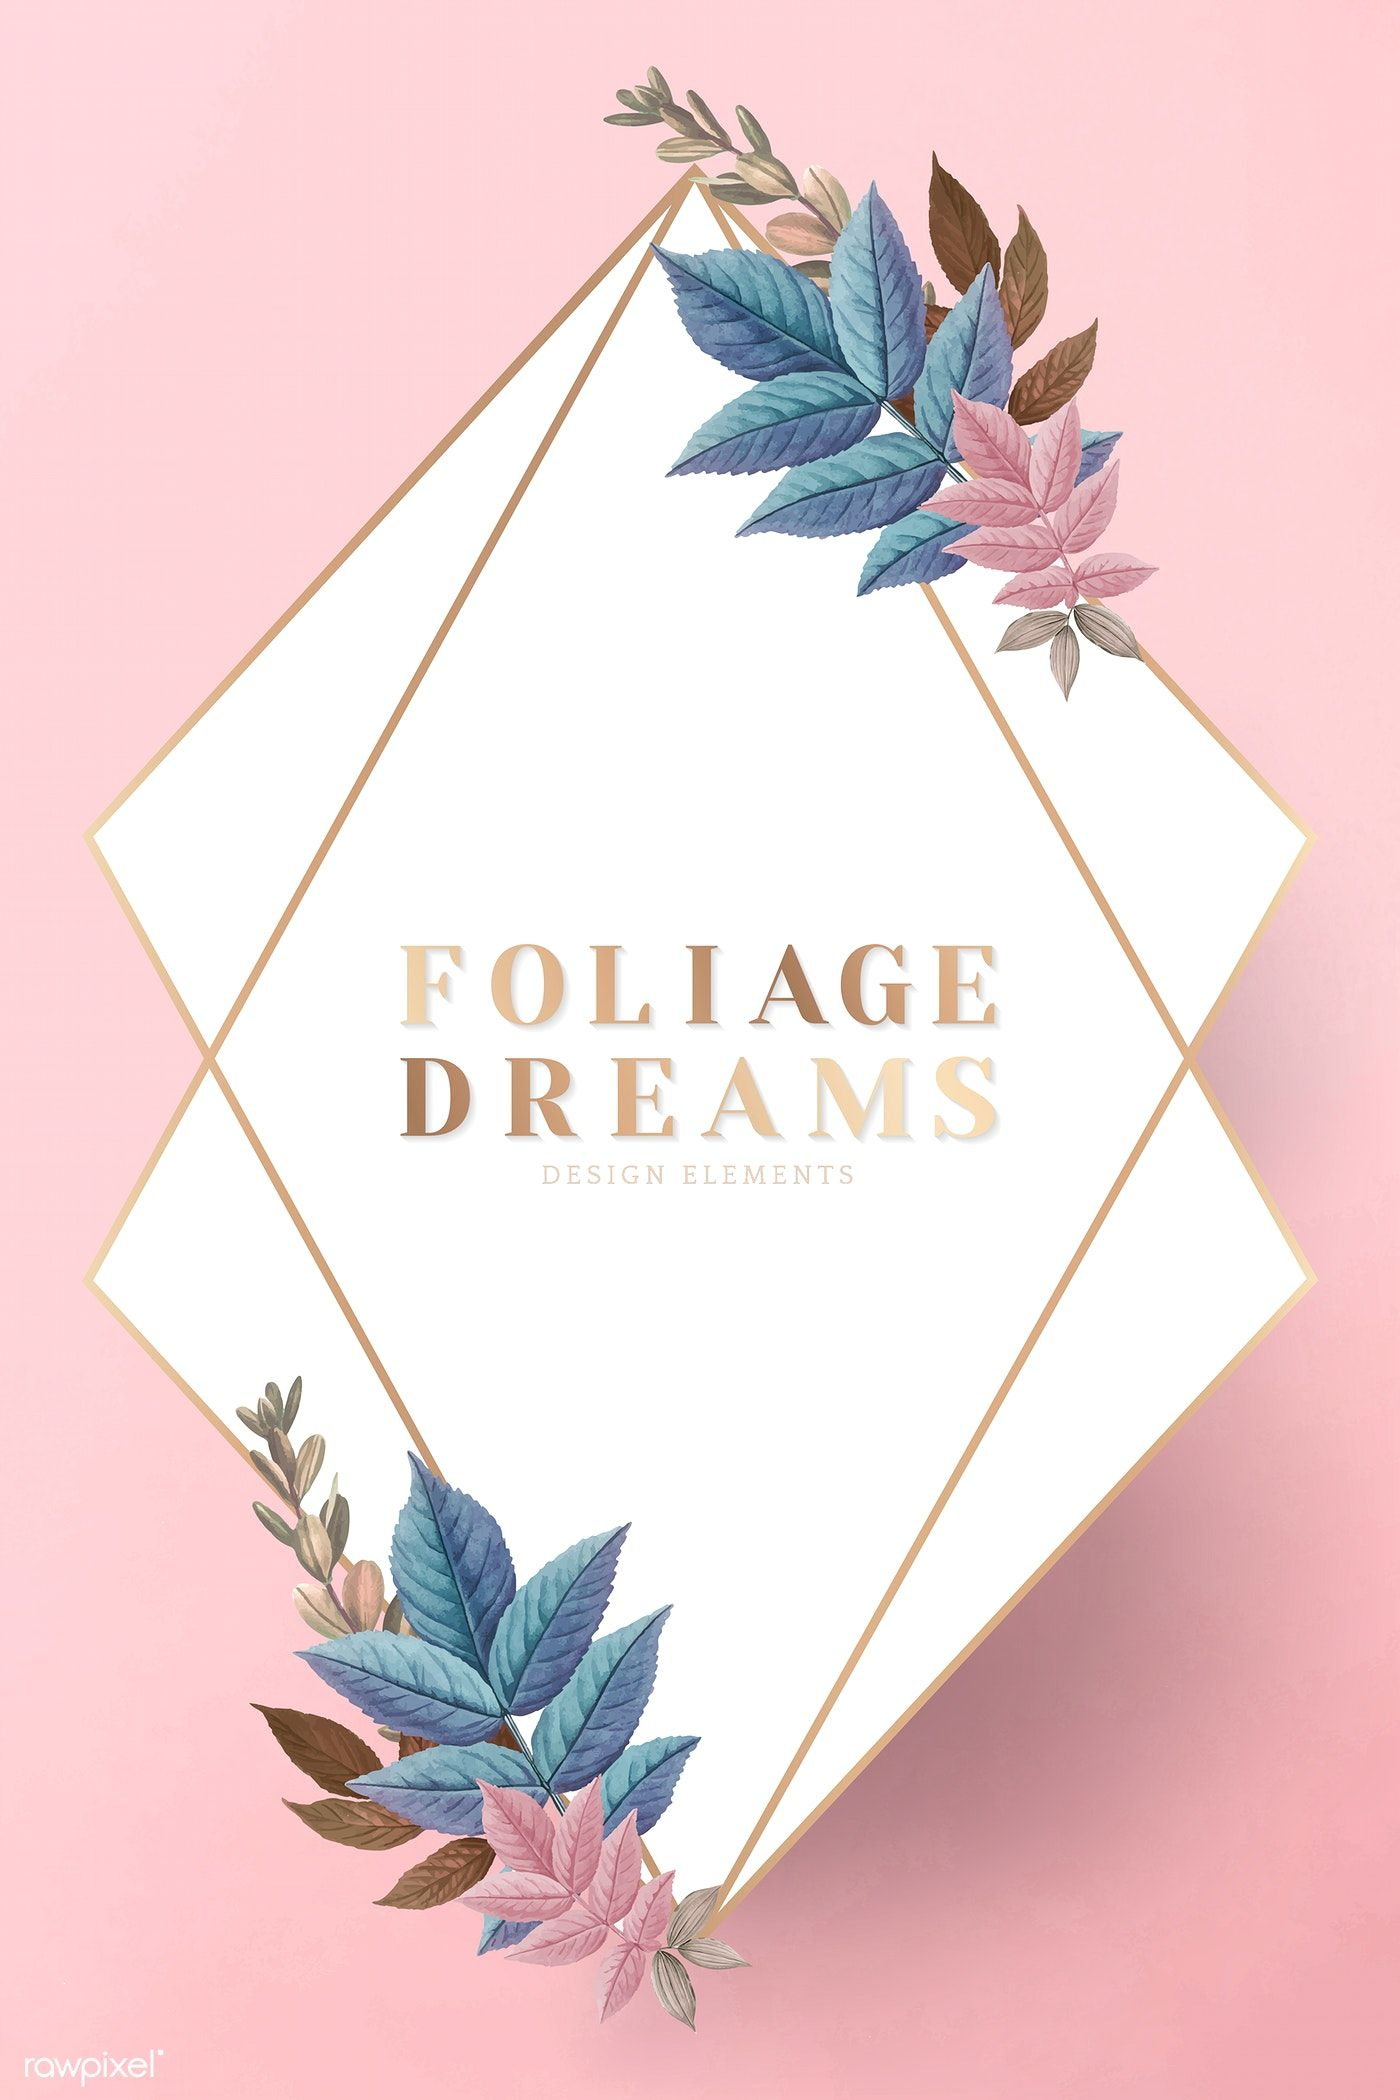 Foliage dreams leaf patterned frame vector free image by